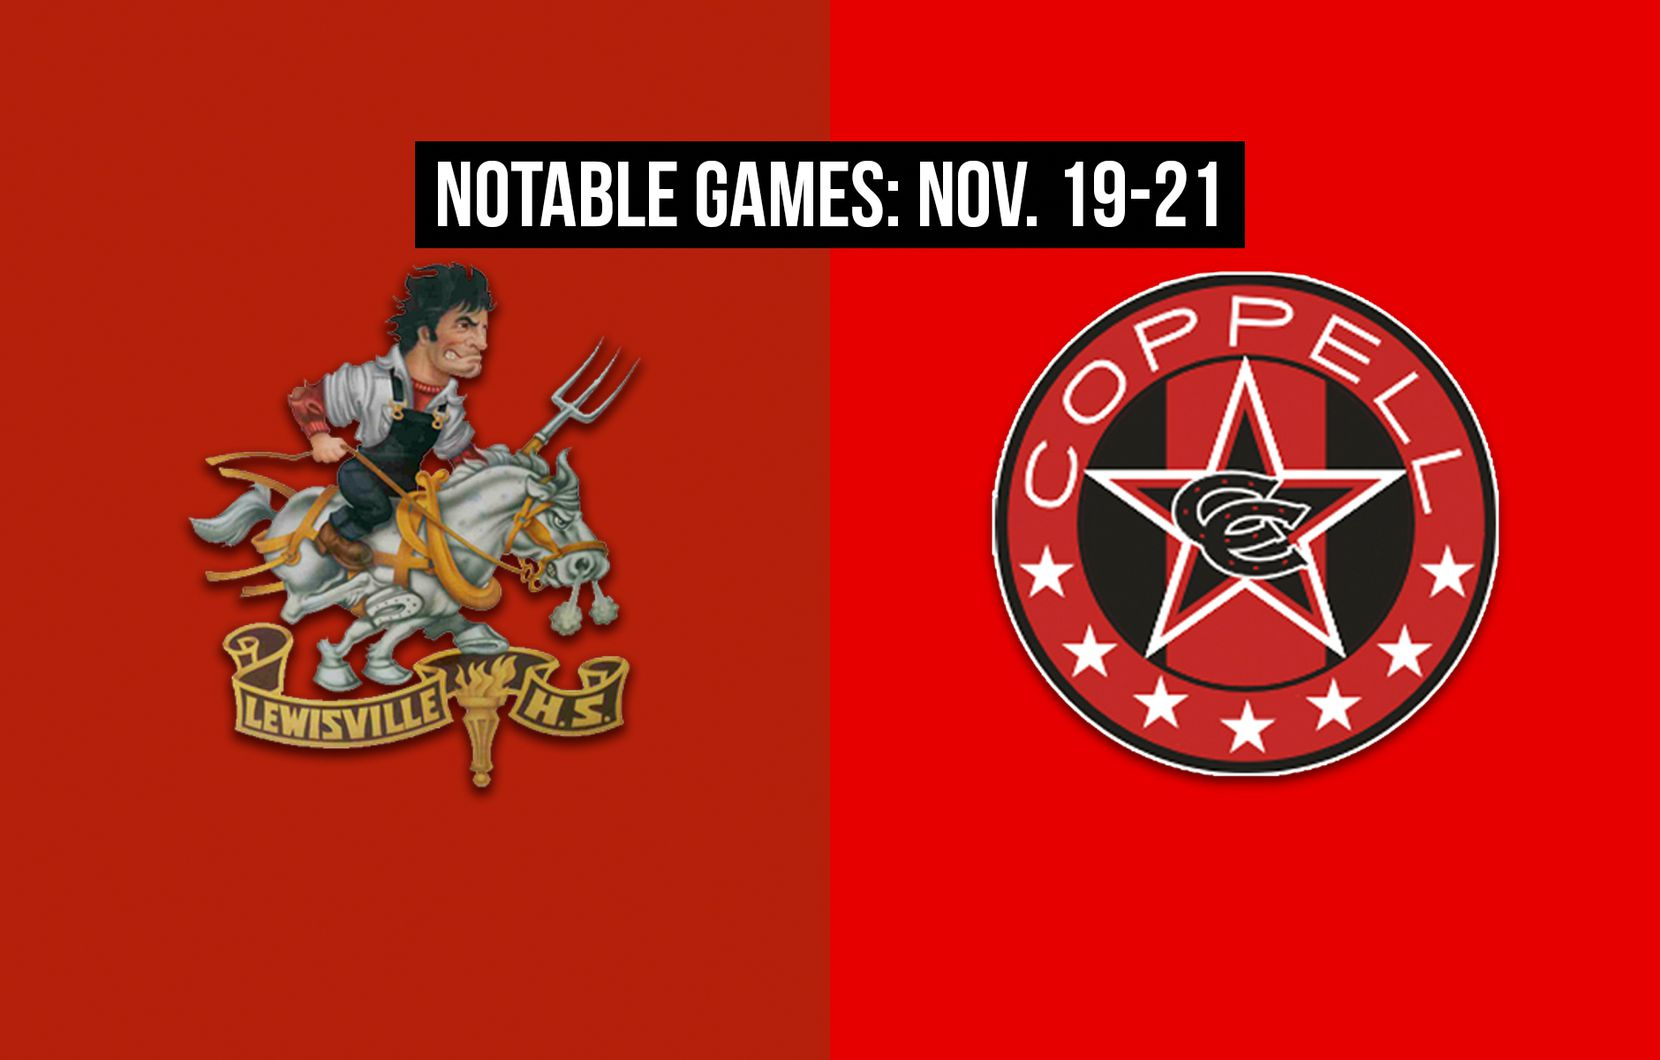 Notable games for the week of Nov. 19-21 of the 2020 season: Lewisville vs. Coppell.